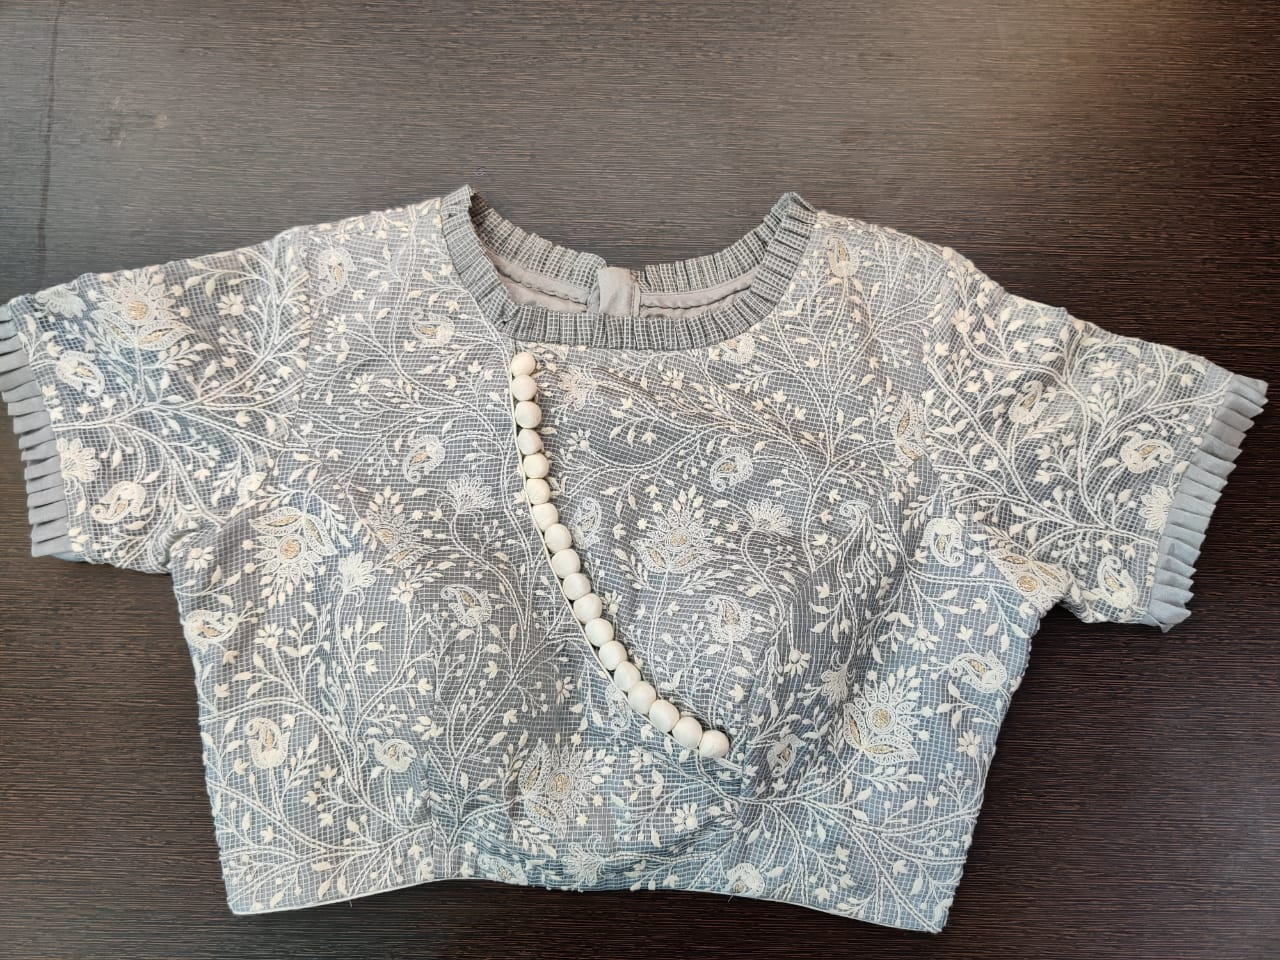 Shop grey embroidered saree blouse online in USA with frill edging. Elevate your Indian saree style with exquisite readymade sari blouses, embroidered saree blouses, Benarasi saree blouse, fancy saree blouse from Pure Elegance Indian clothing store in USA.-front